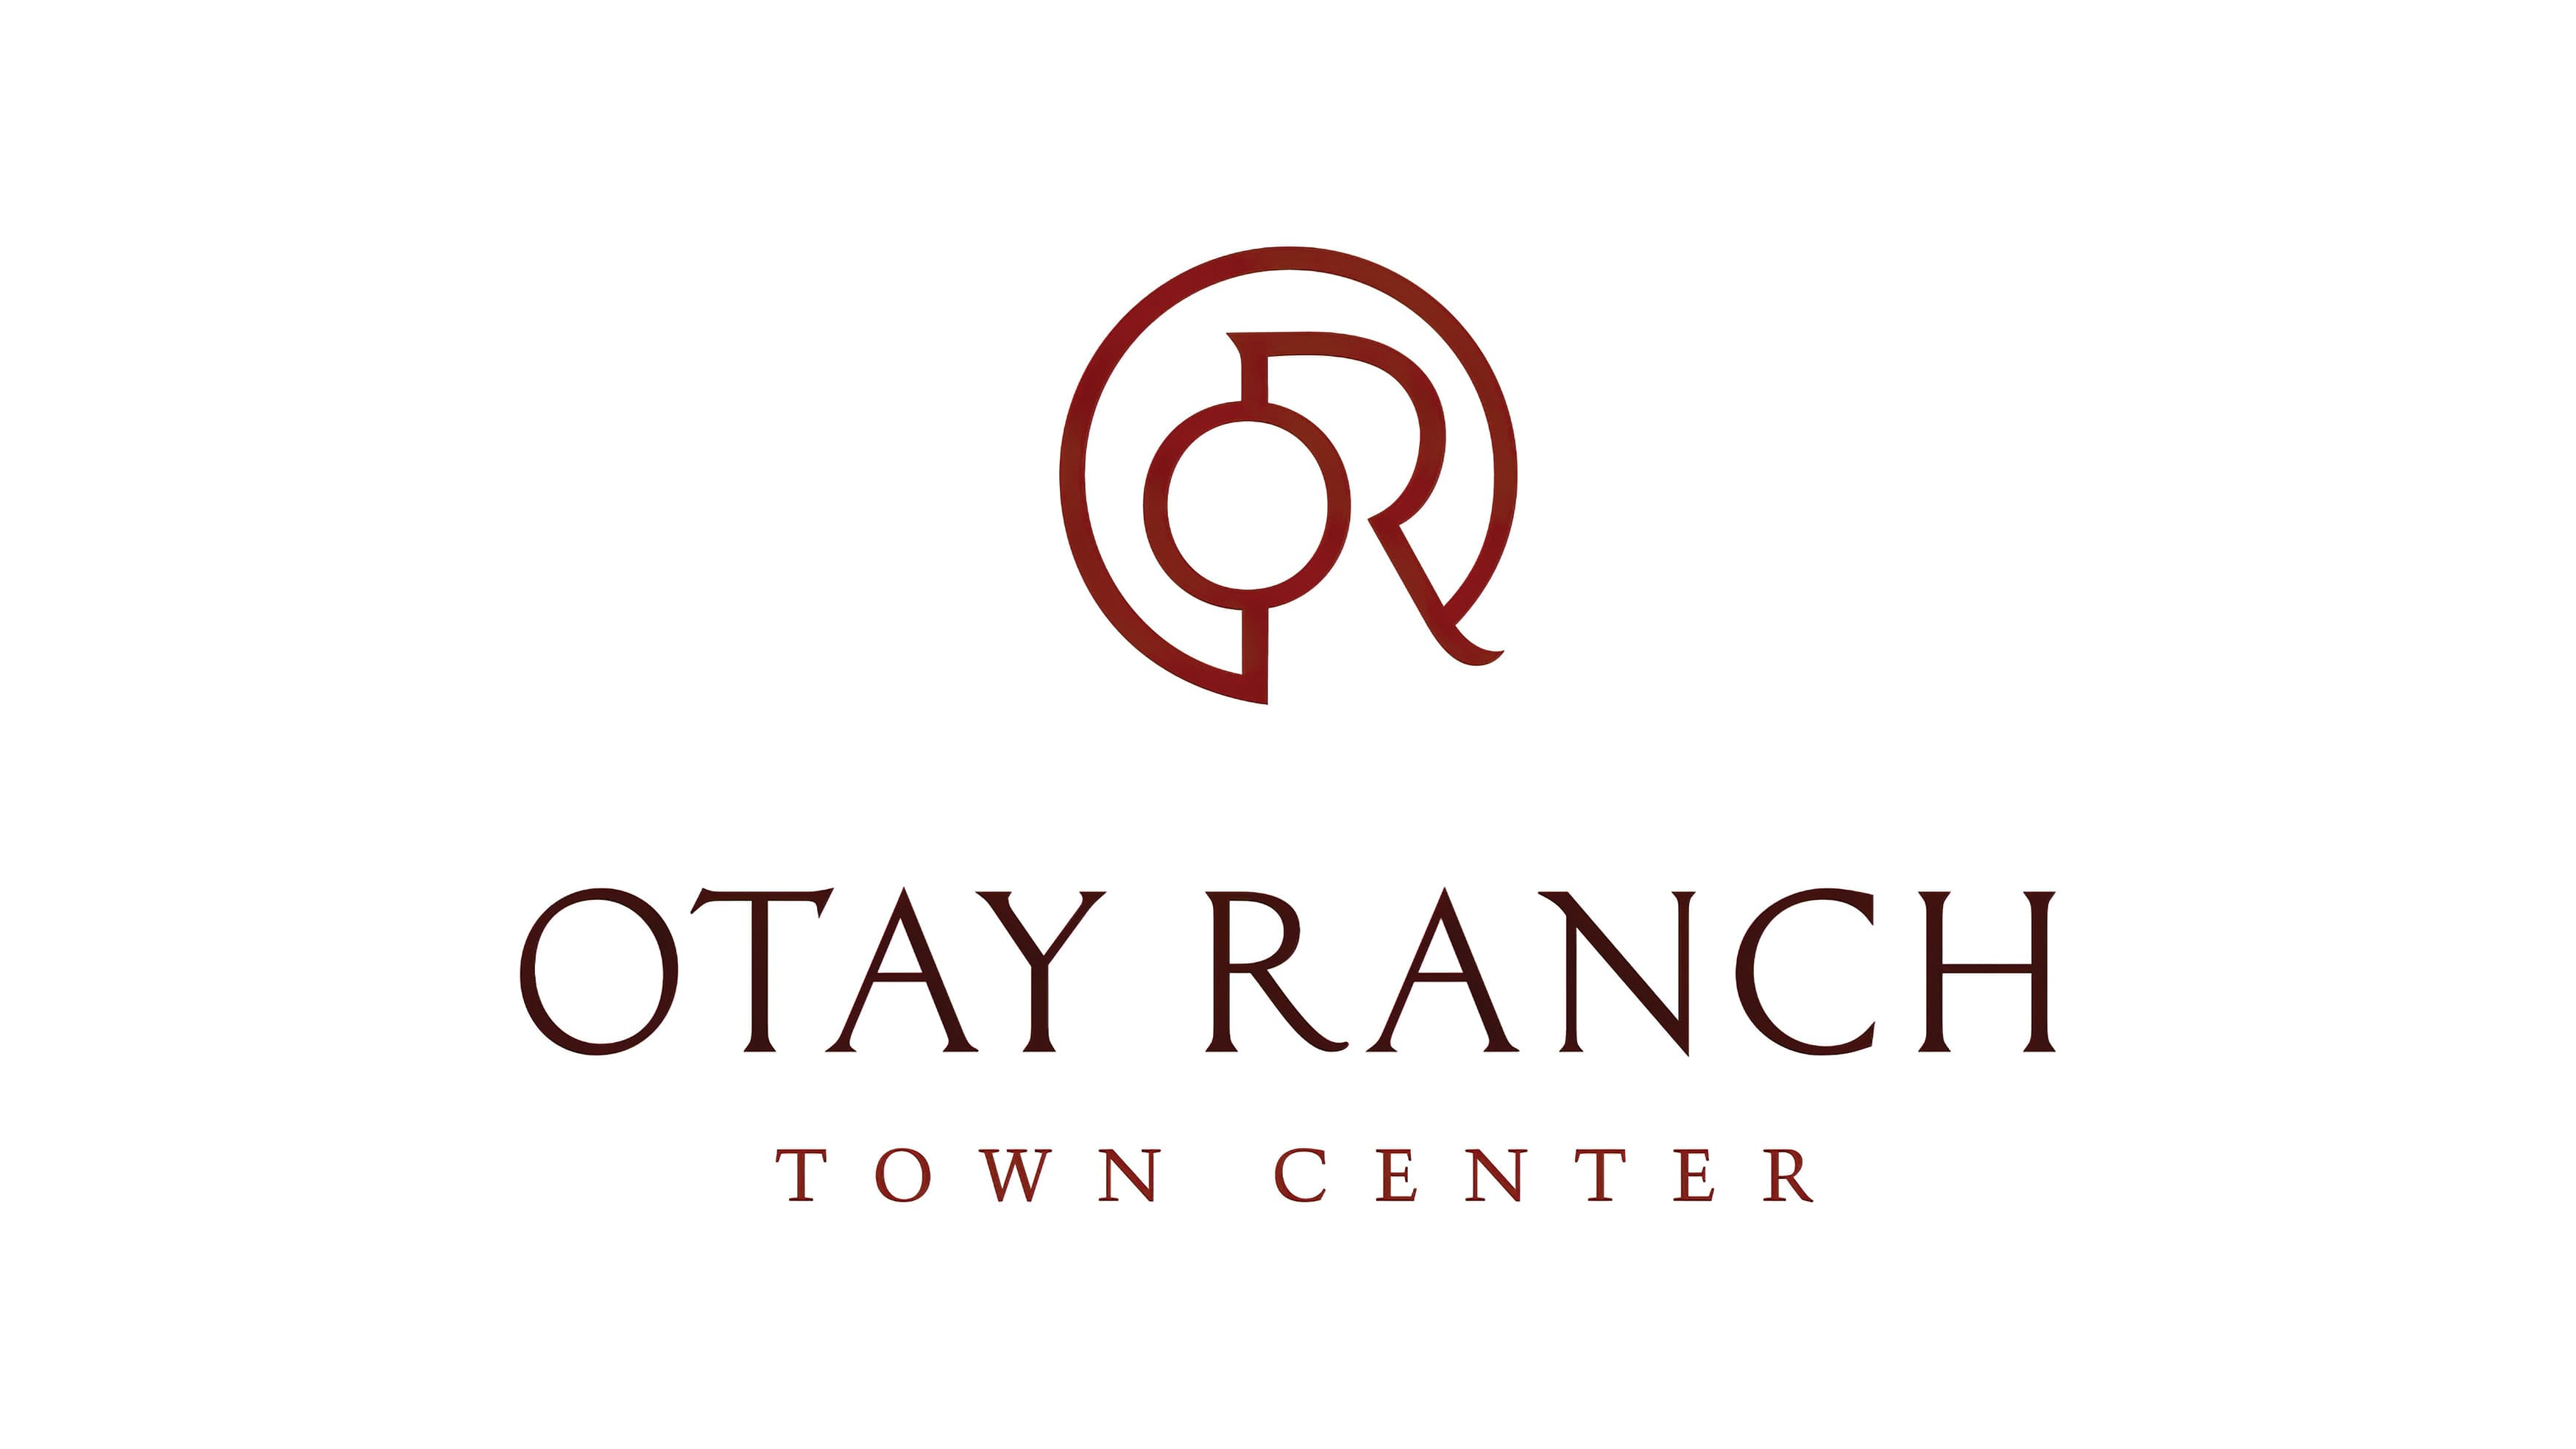 Otay Ranch brand logo styled to resemble a cattle-brand